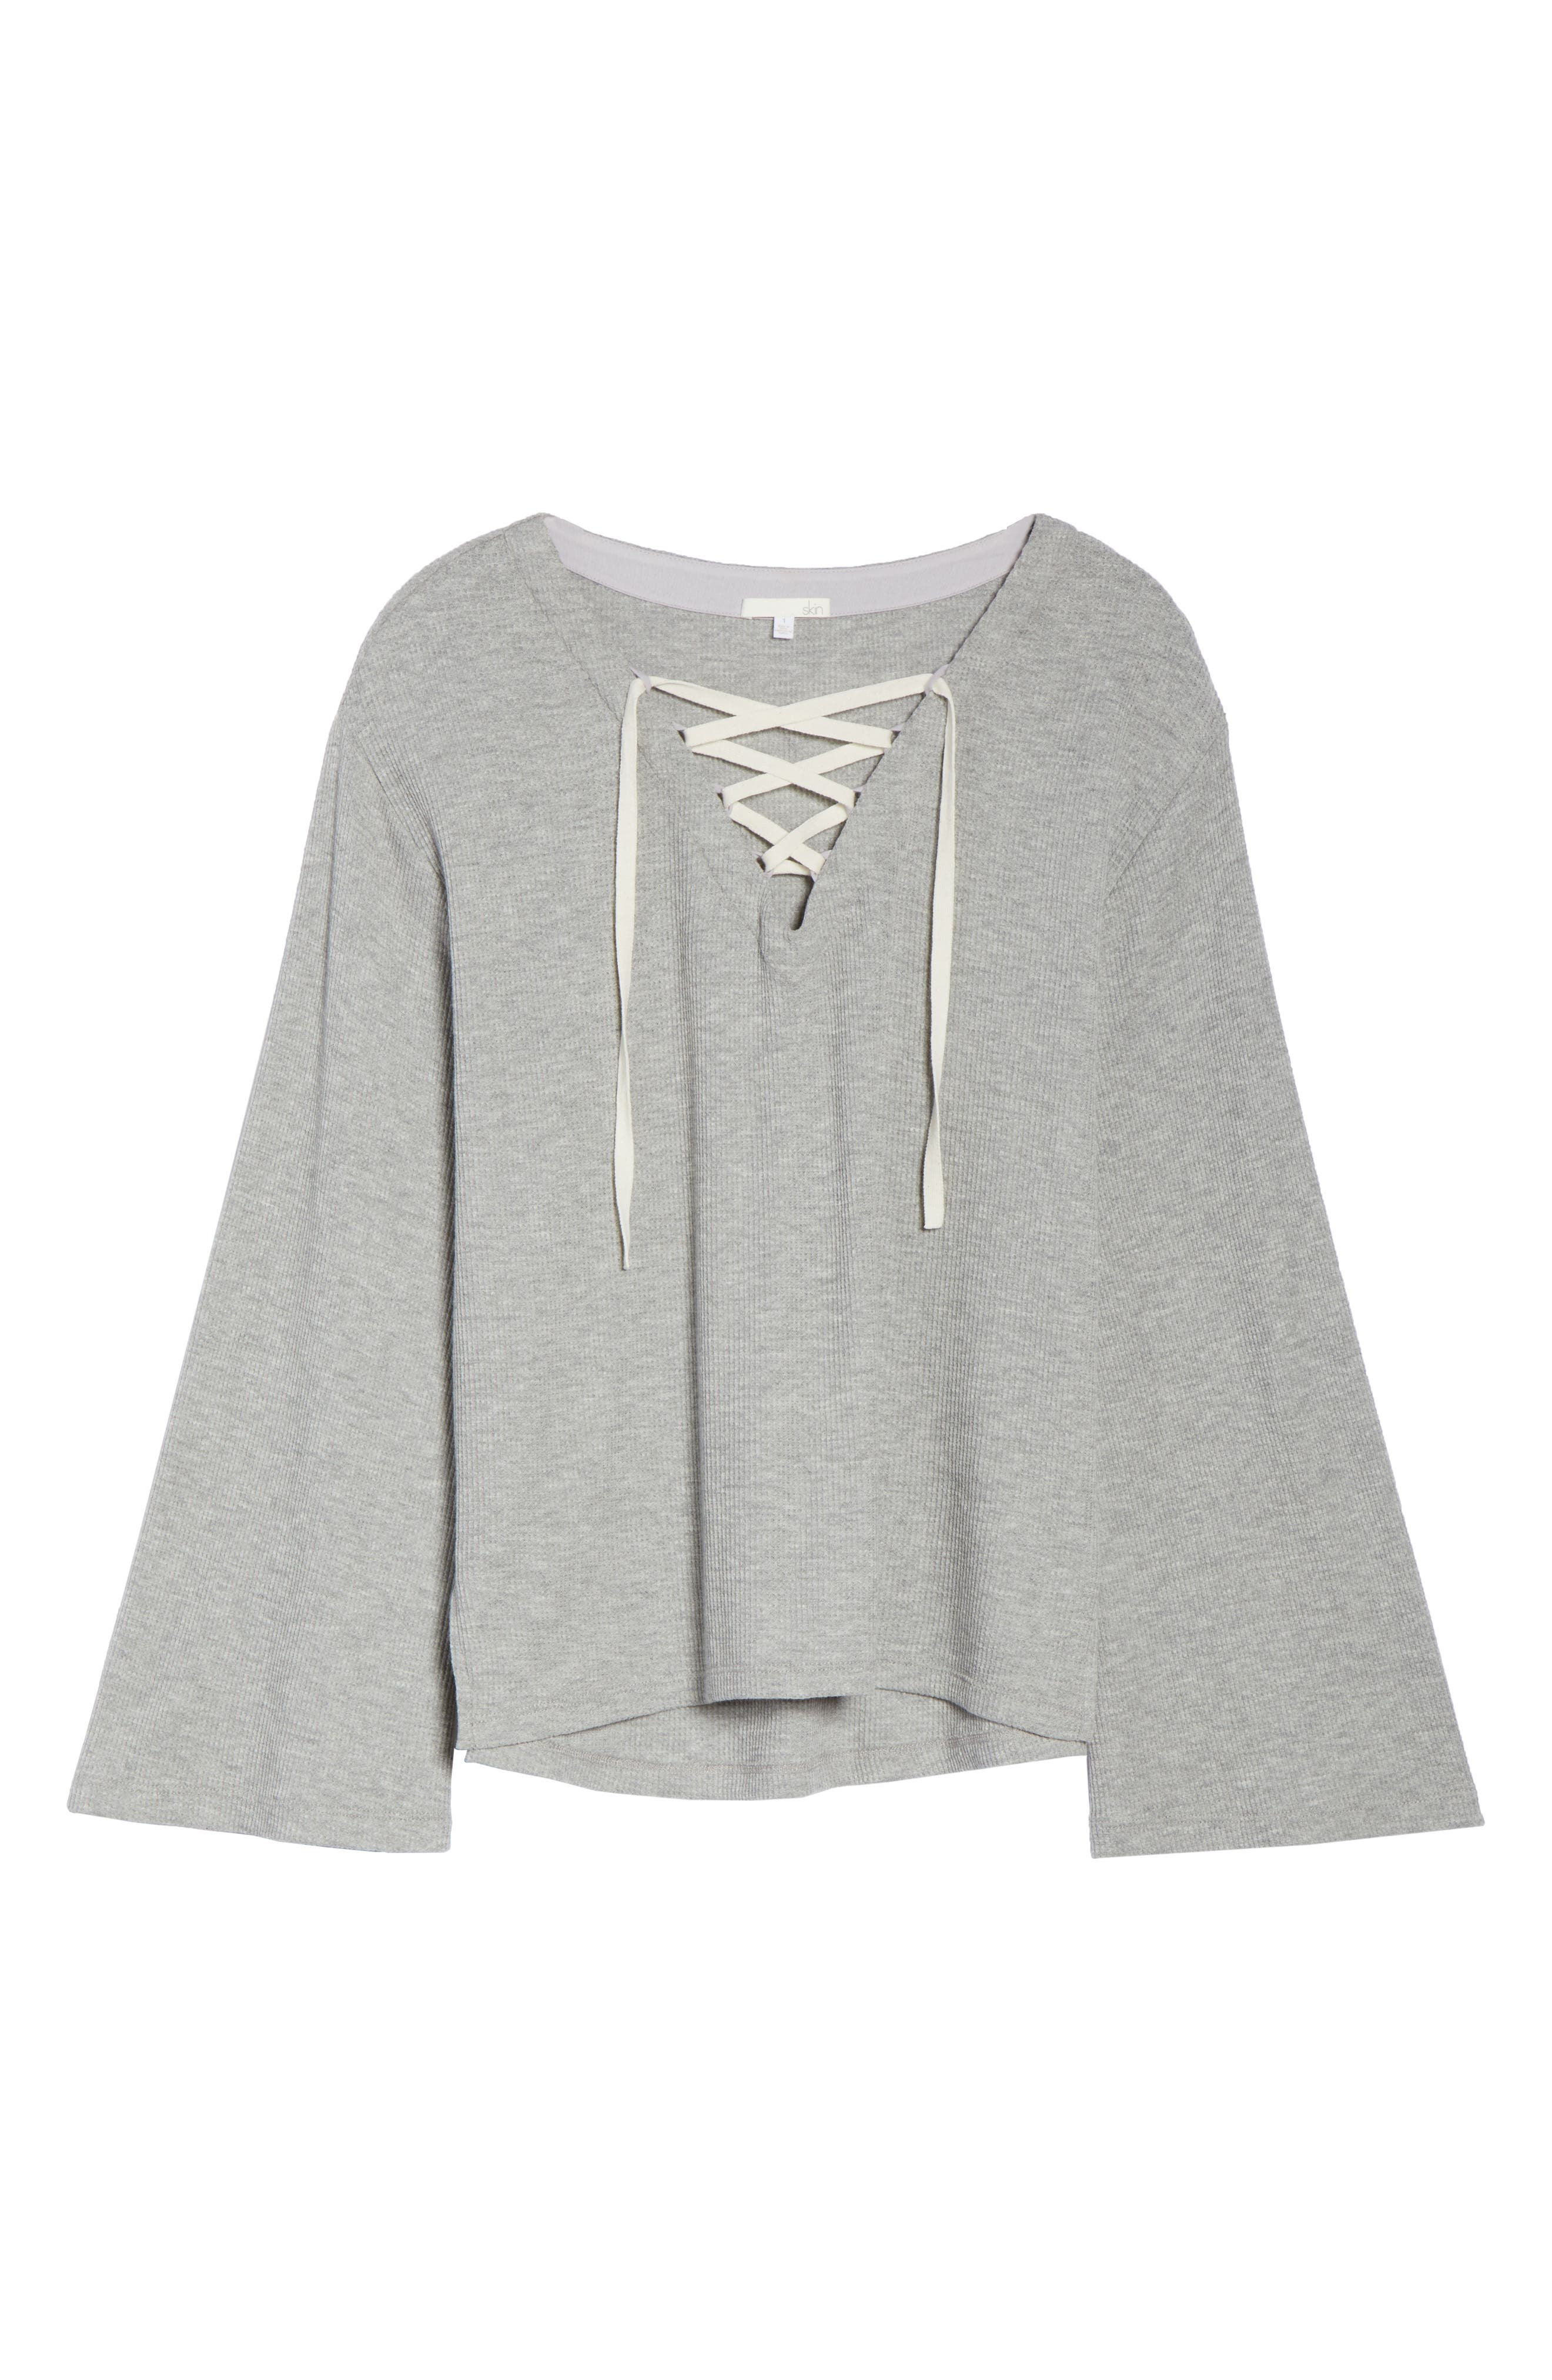 Elyse Lace-Up Waffle Knit Sleep Top,                             Alternate thumbnail 7, color,                             Heather Grey